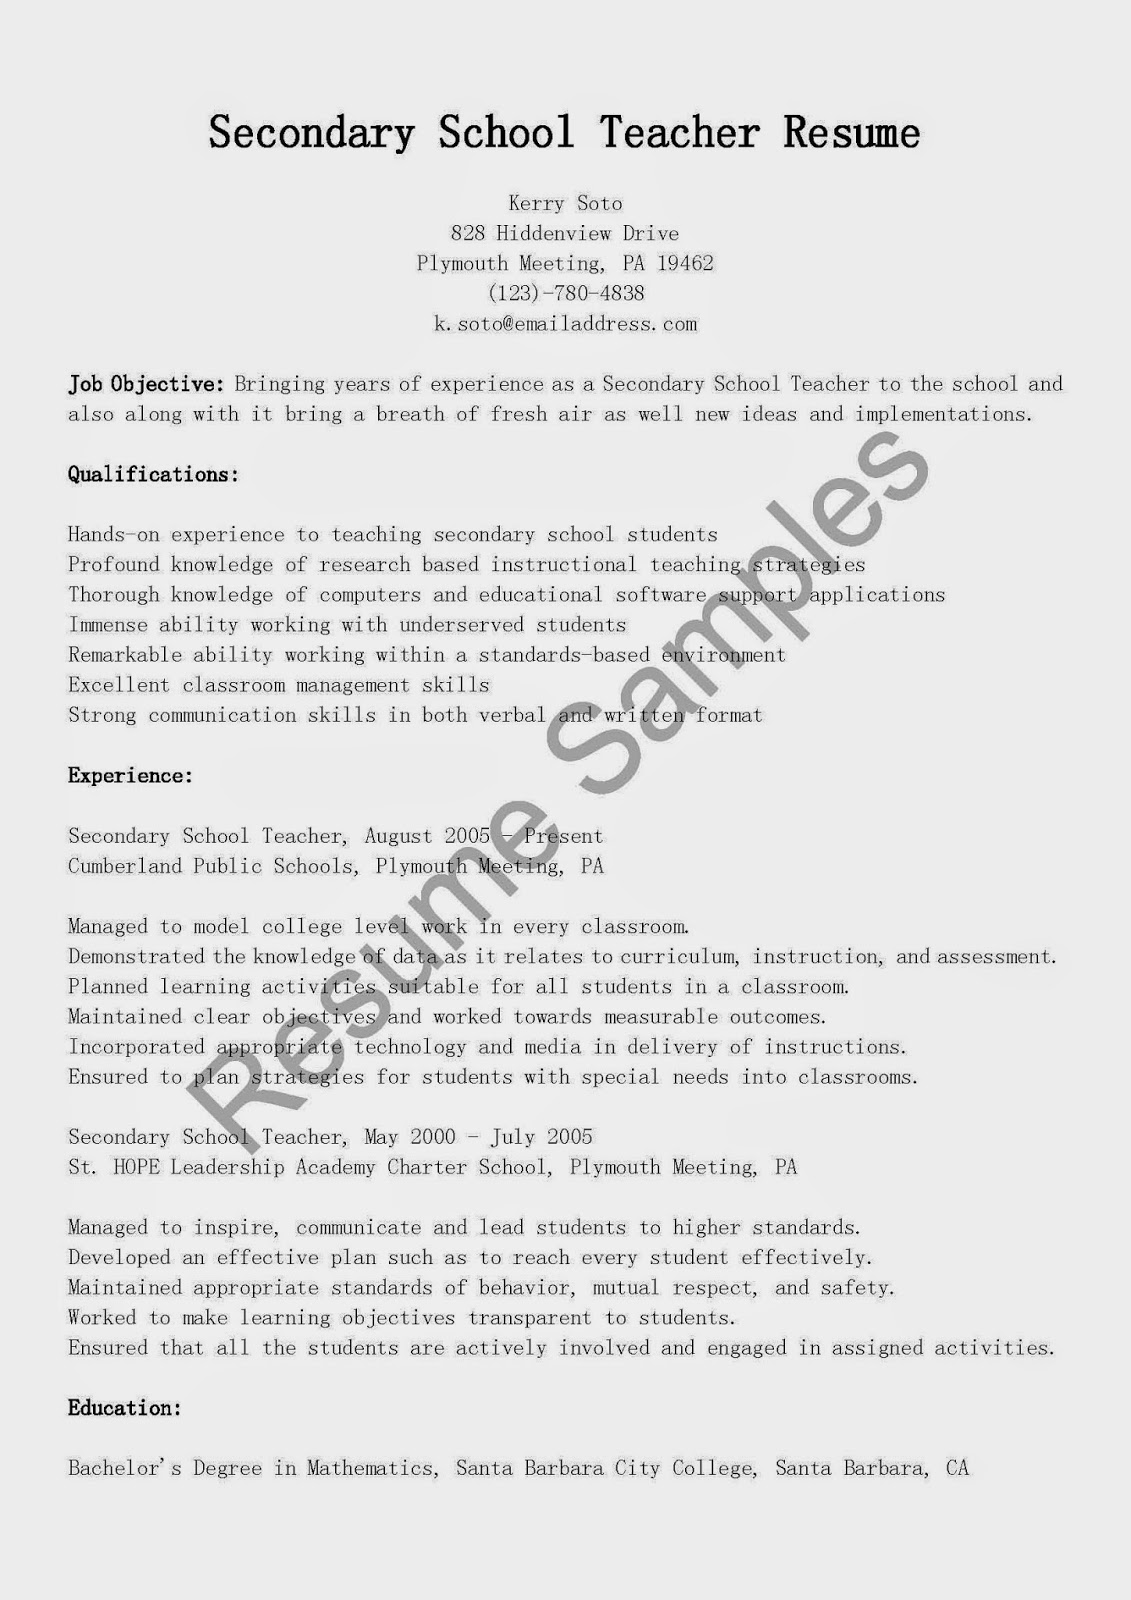 Ontario Teacher Resume Sample Assignment Writing Tips Personal Essay For Scholarship